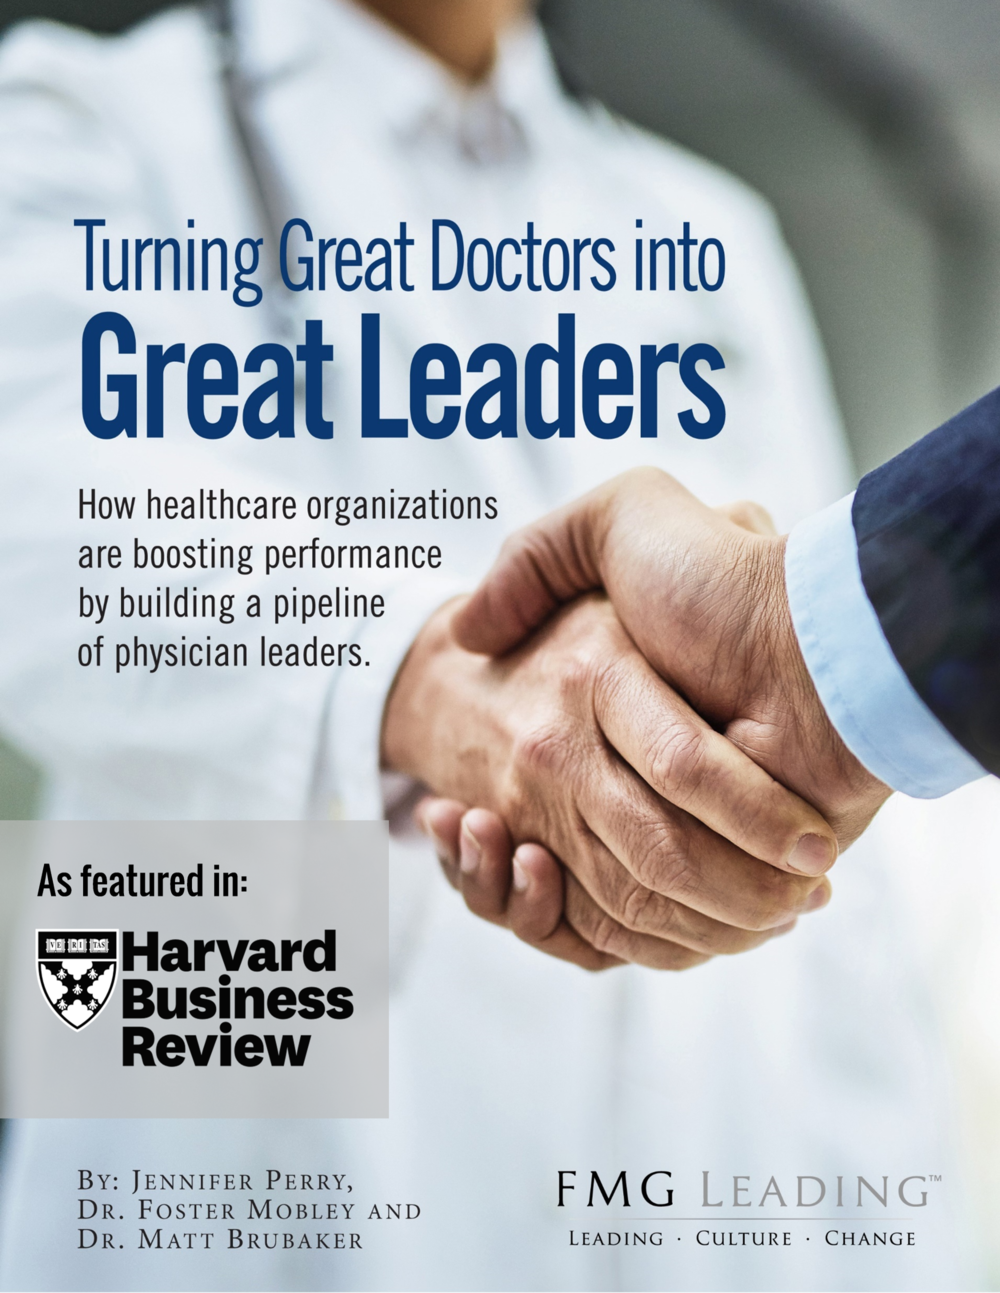 FMG Leading Turning Great Doctors Into Great Leaders